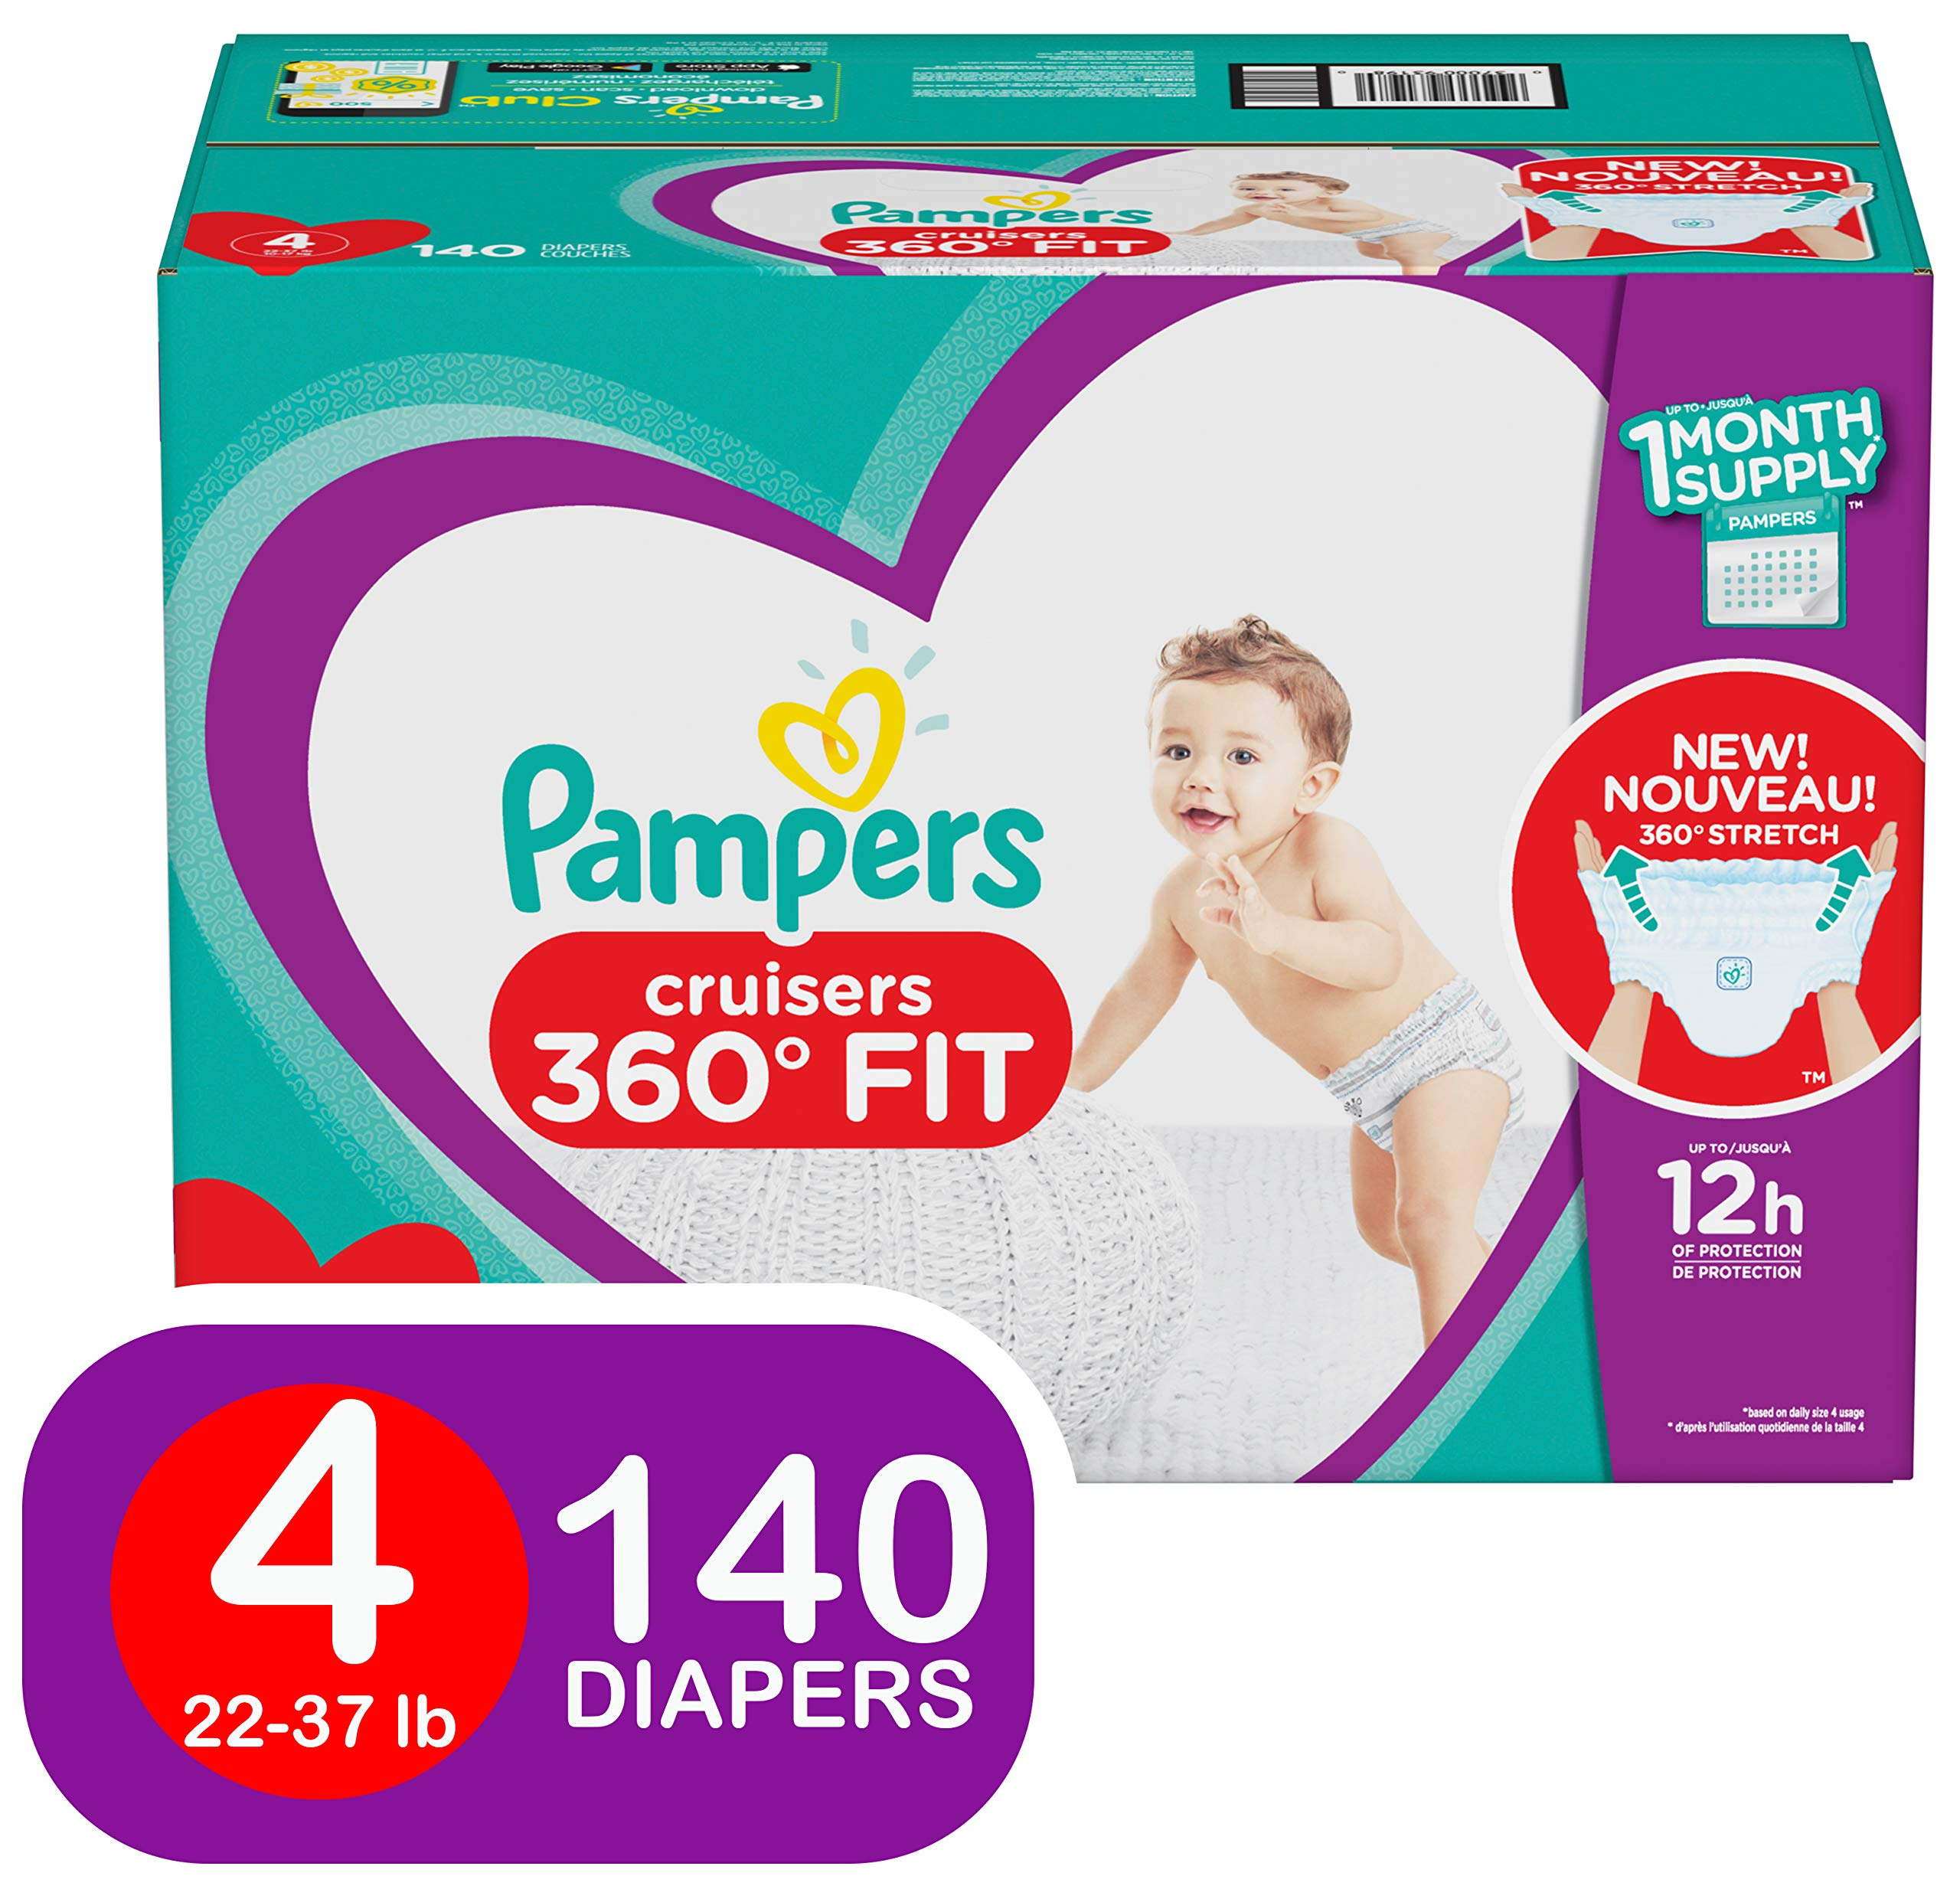 Diapers Size 4, 140 Count - Pampers Pull On Cruisers 360˚ Fit Disposable Baby Diapers with Stretchy Waistband, ONE Month Supply by Pampers